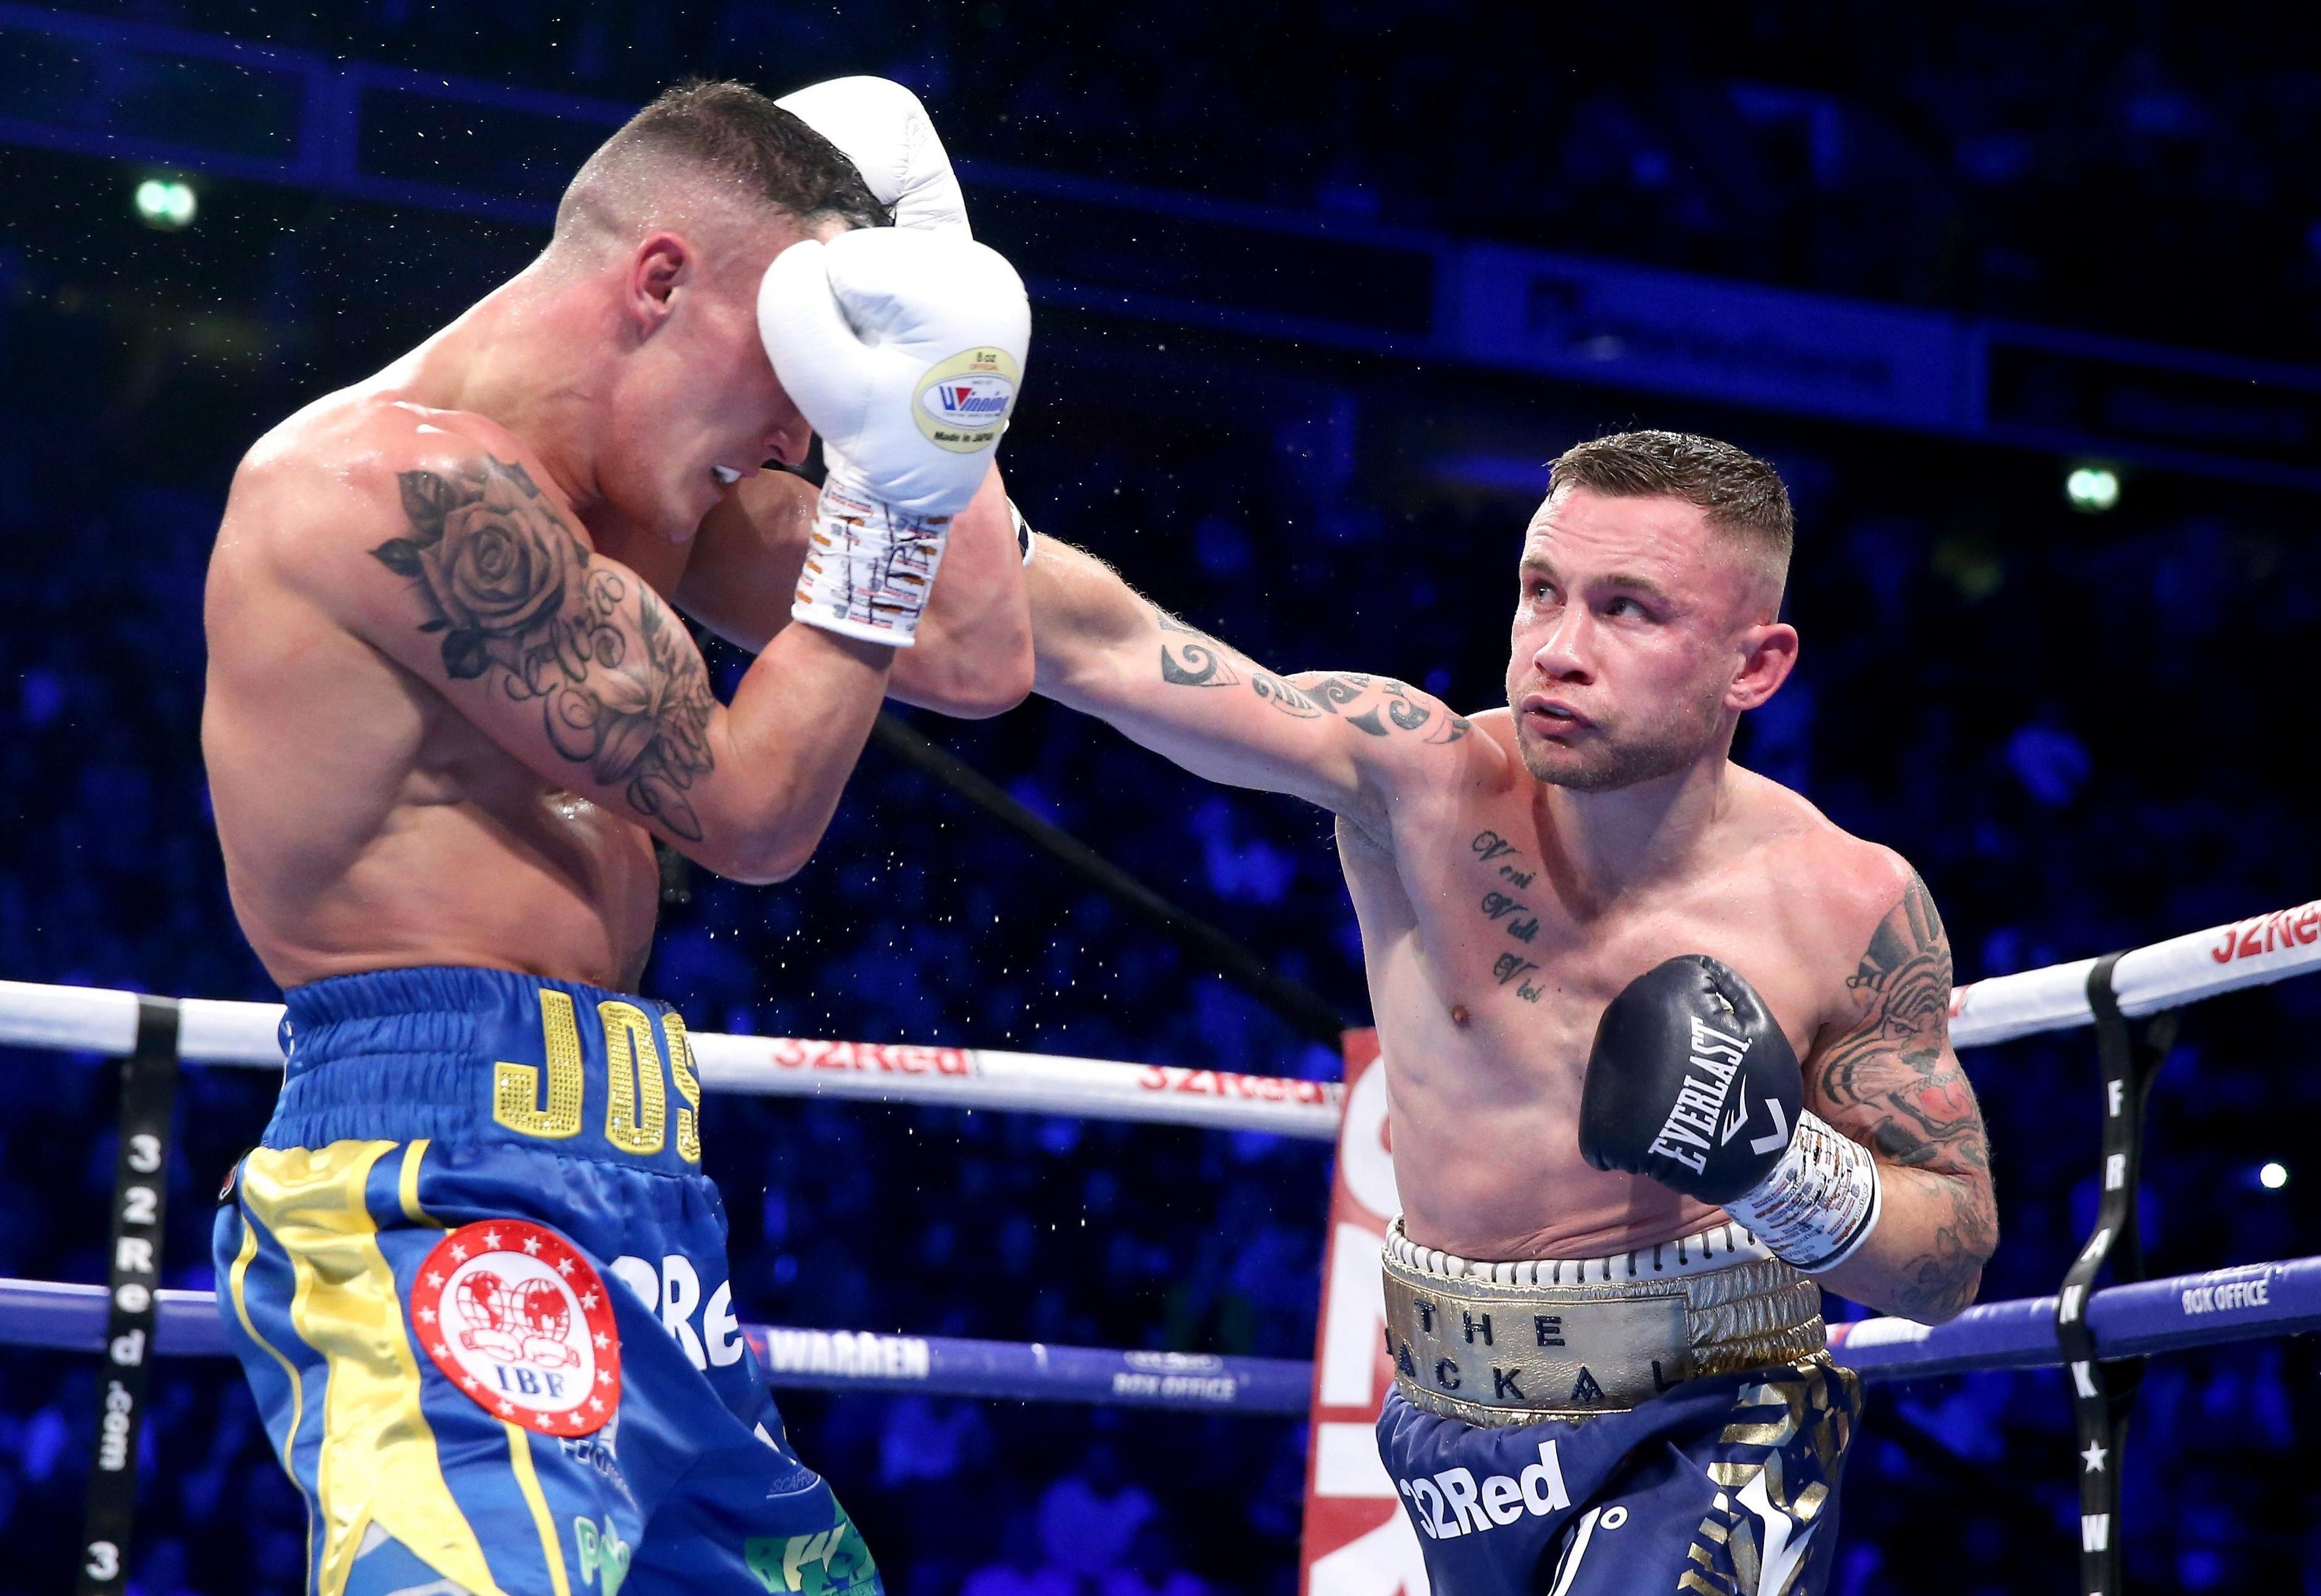 Carl Frampton leaves retirement up in the air and says 'I don't want to think about boxing for a while'